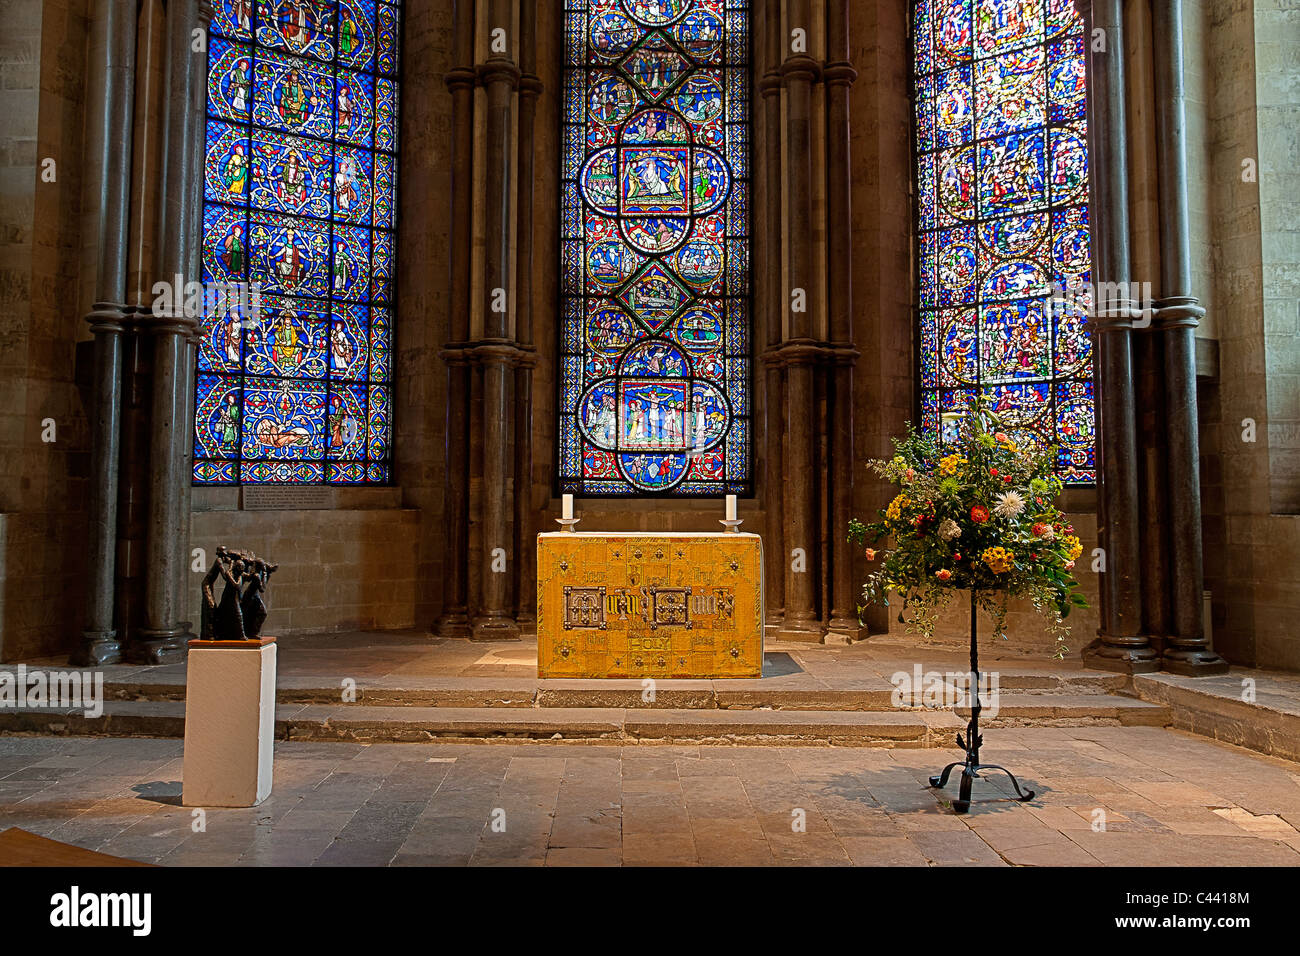 England, Canterbury Cathedral. Interior. Altar in the trinity chapel, with three stained-glass windows behind. HDR - Stock Image